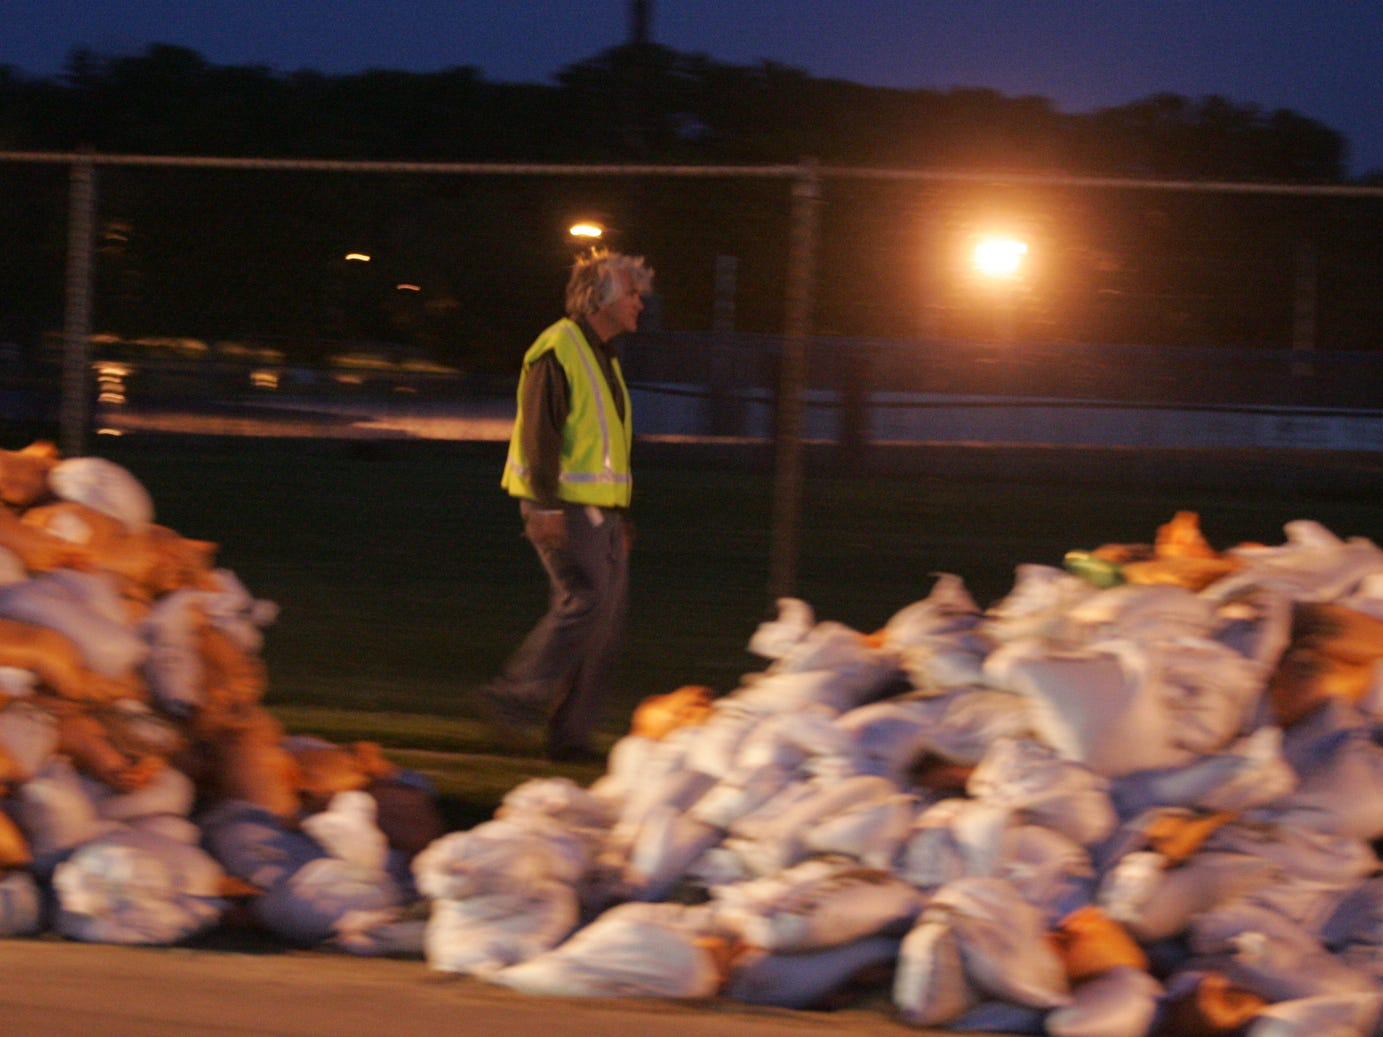 Bill Stowe walks along 2nd Ave. past piles of sandbags at 5 a.m. as work was starting on building a temporary levee during the 2008 flood.